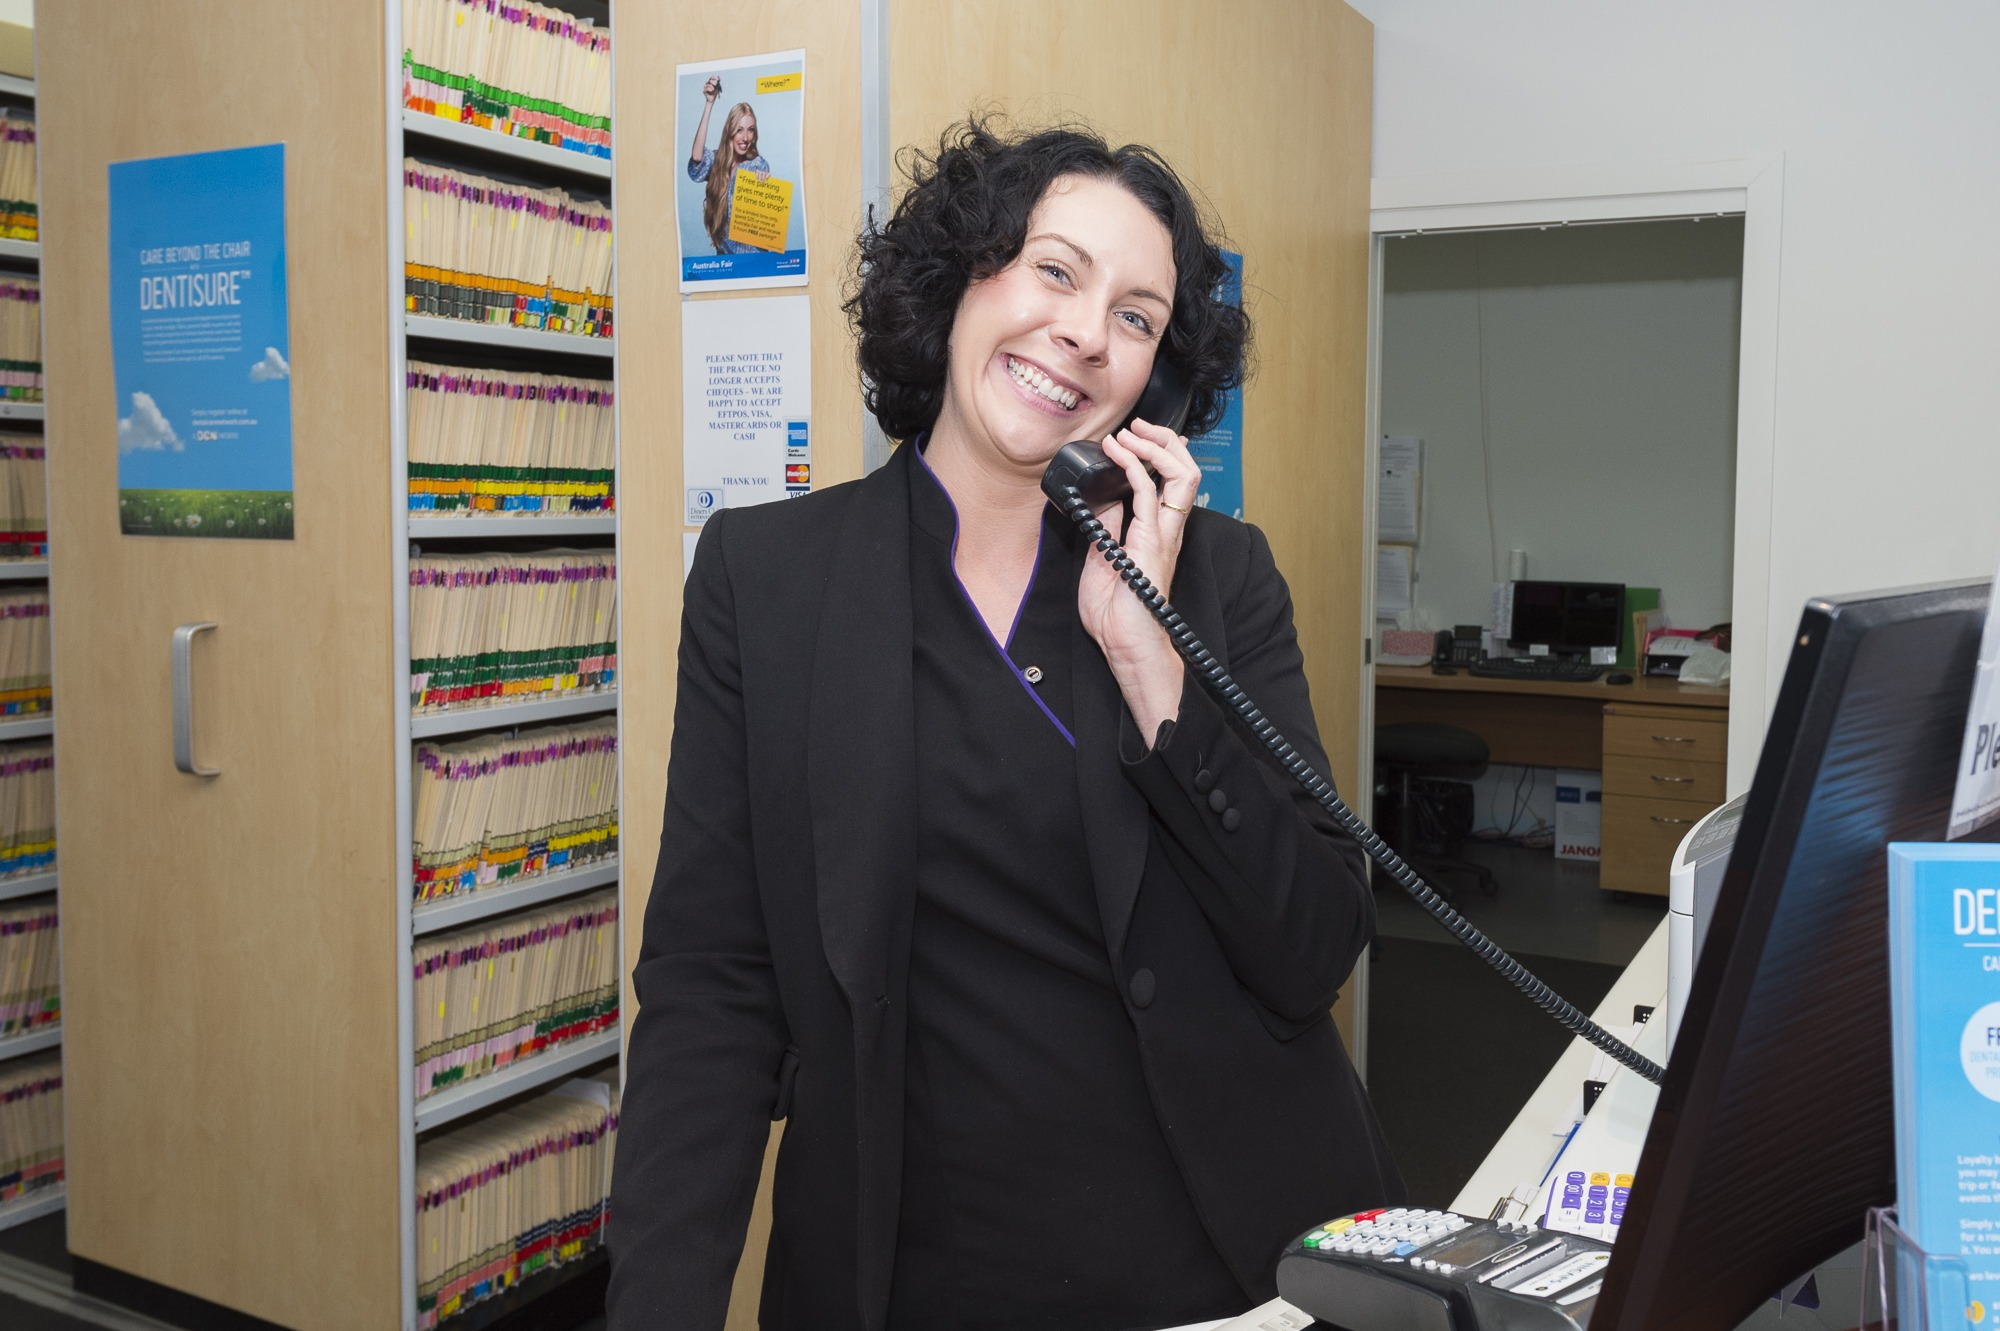 Reception staff at Taylor Dental Implants and Aesthetics